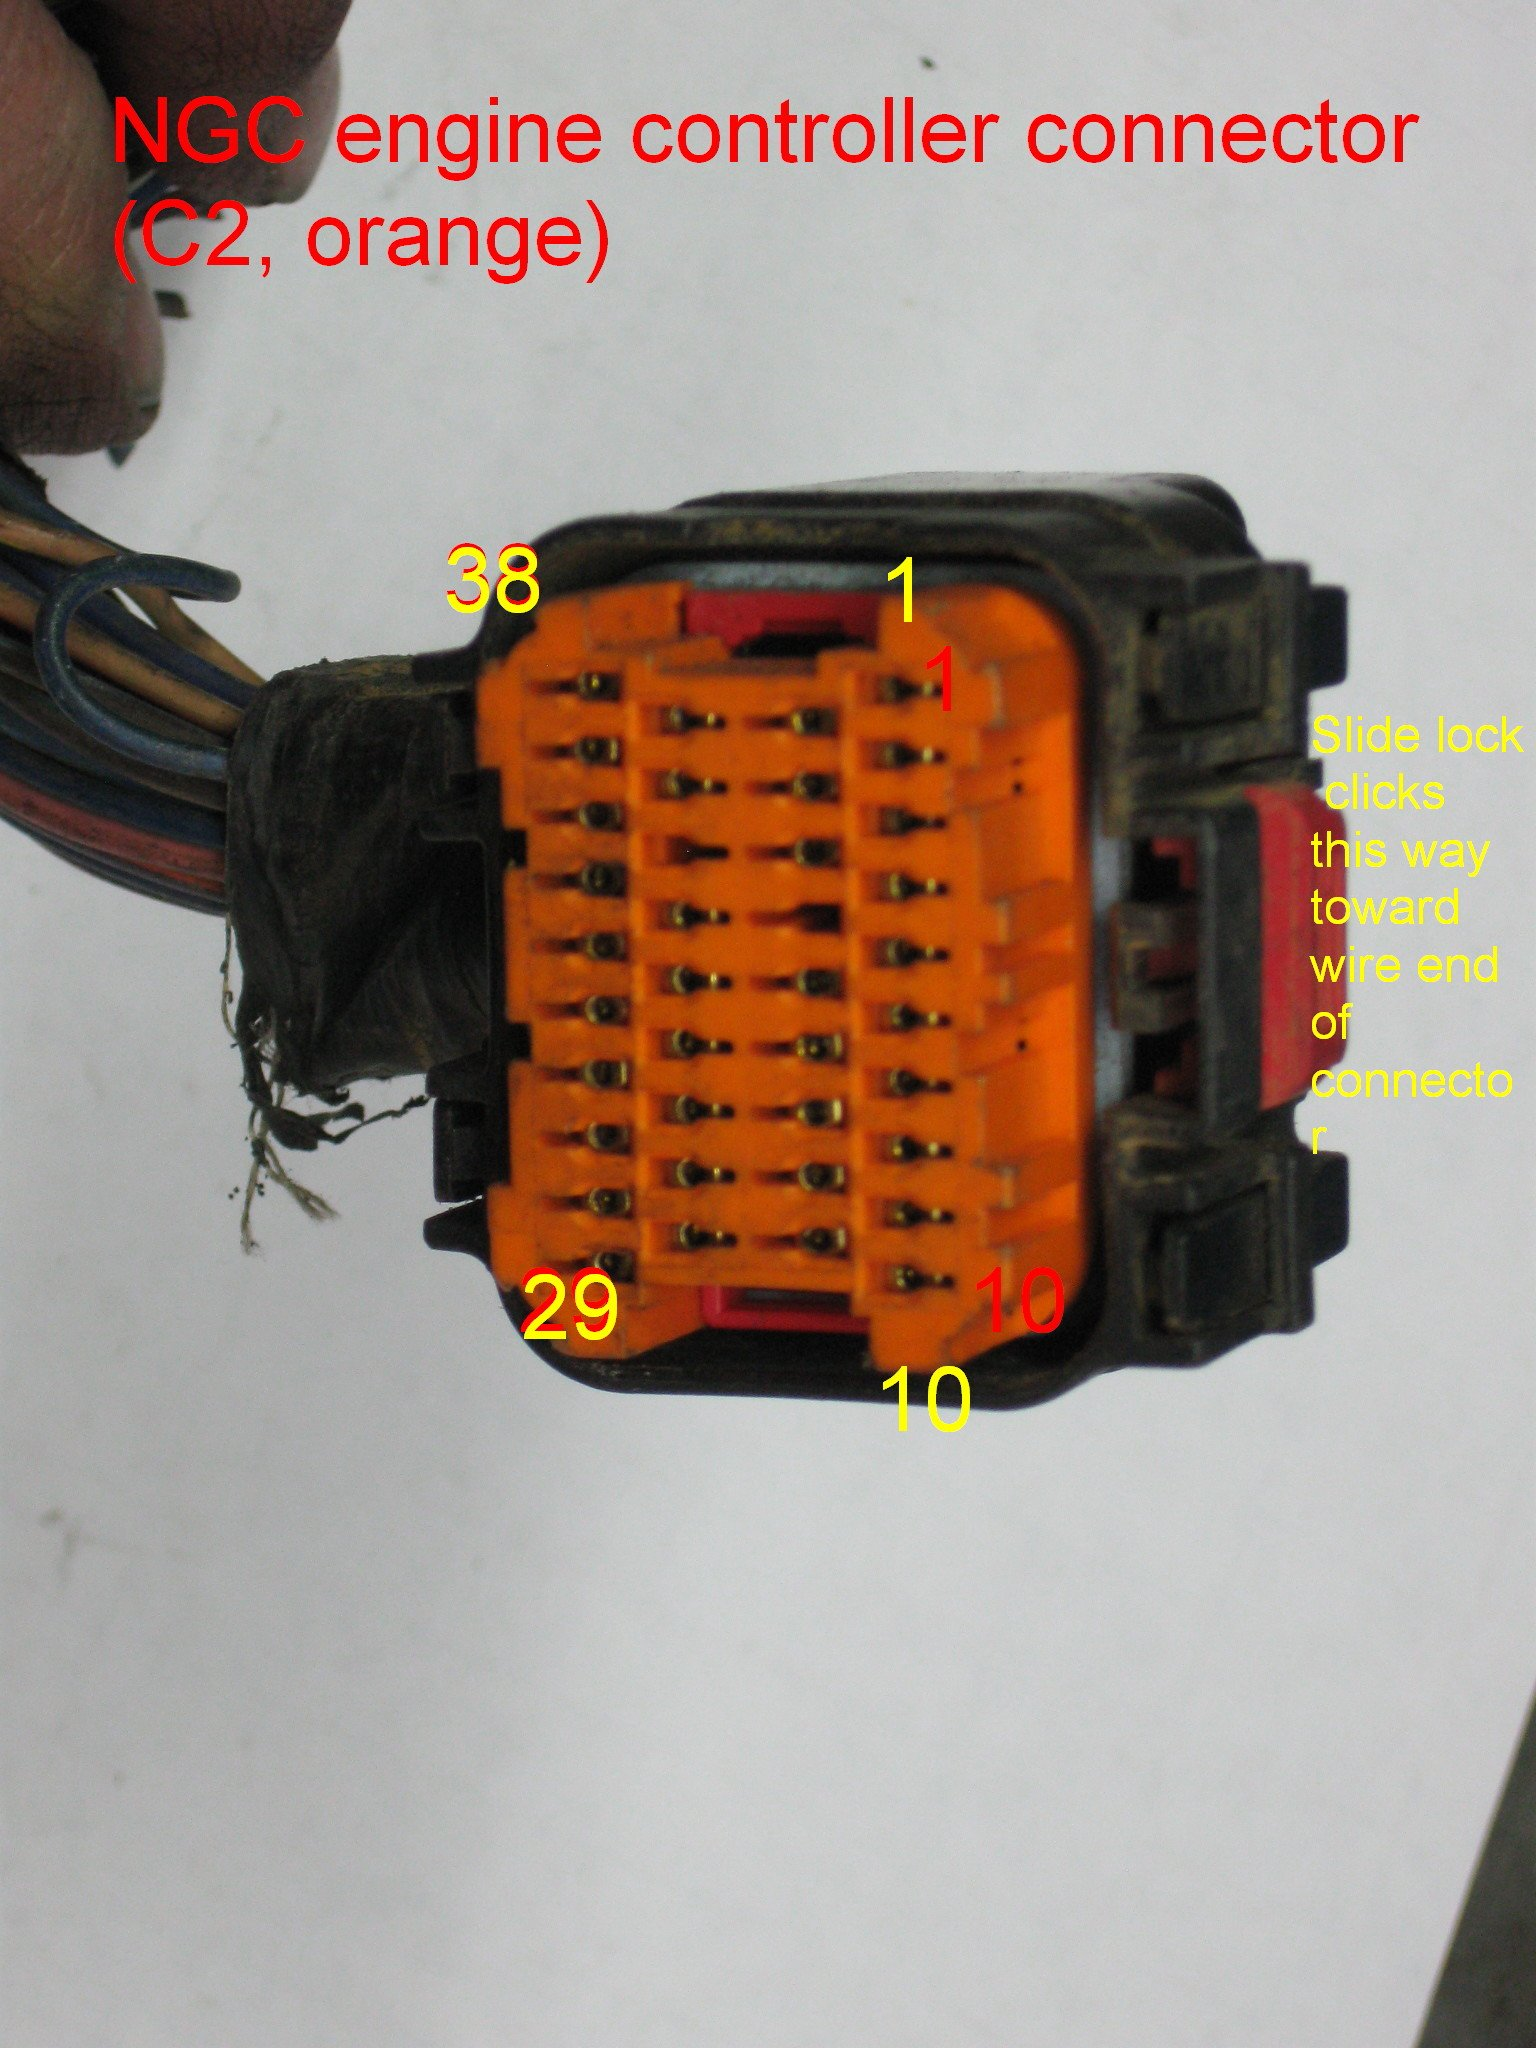 Chrysler Pacifica Ignition Wiring Diagram On Chrysler Starter Wiring